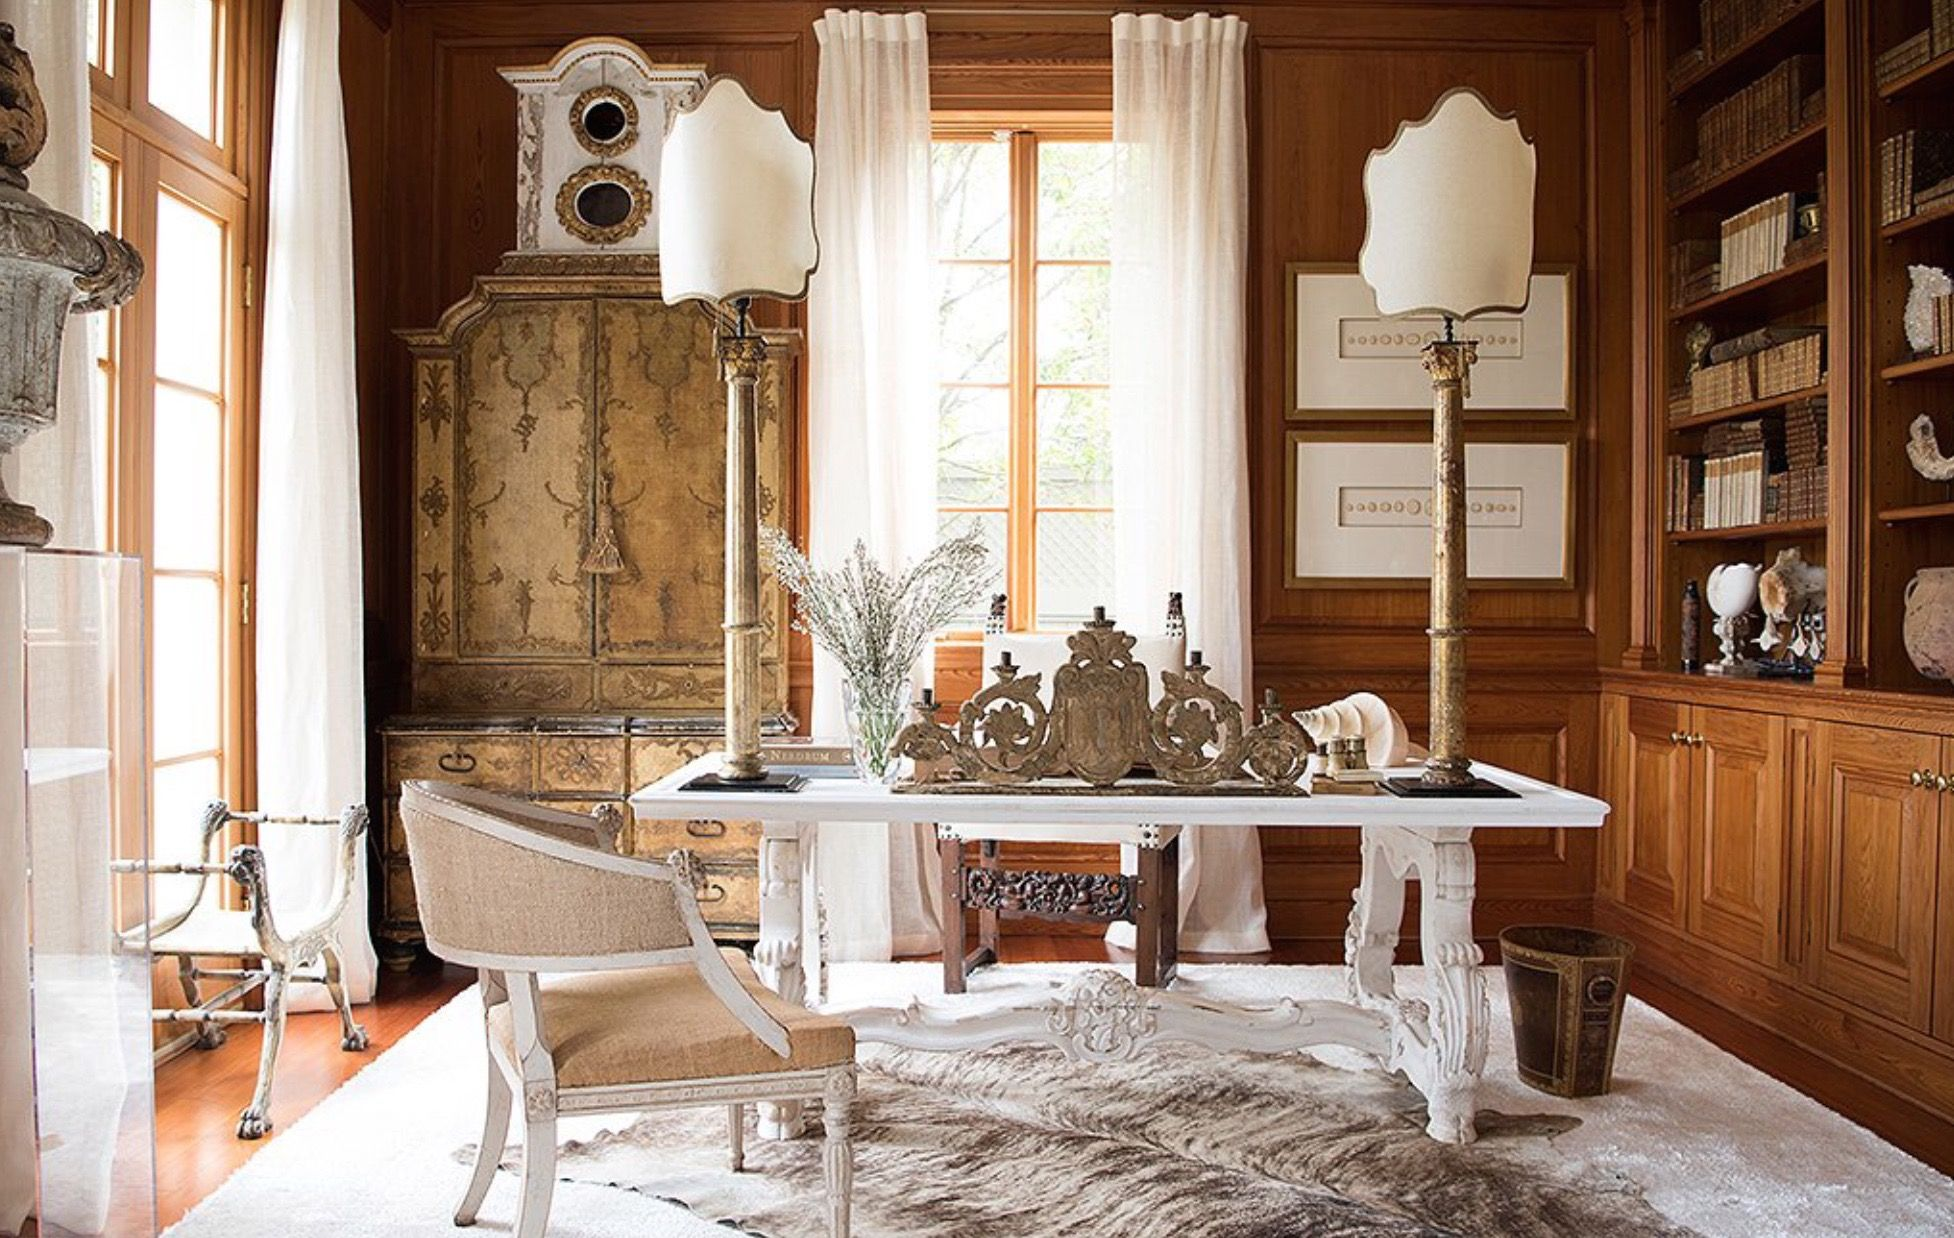 ECLECTIC NEUTRAL TONES IN A TRADITIONAL HOME